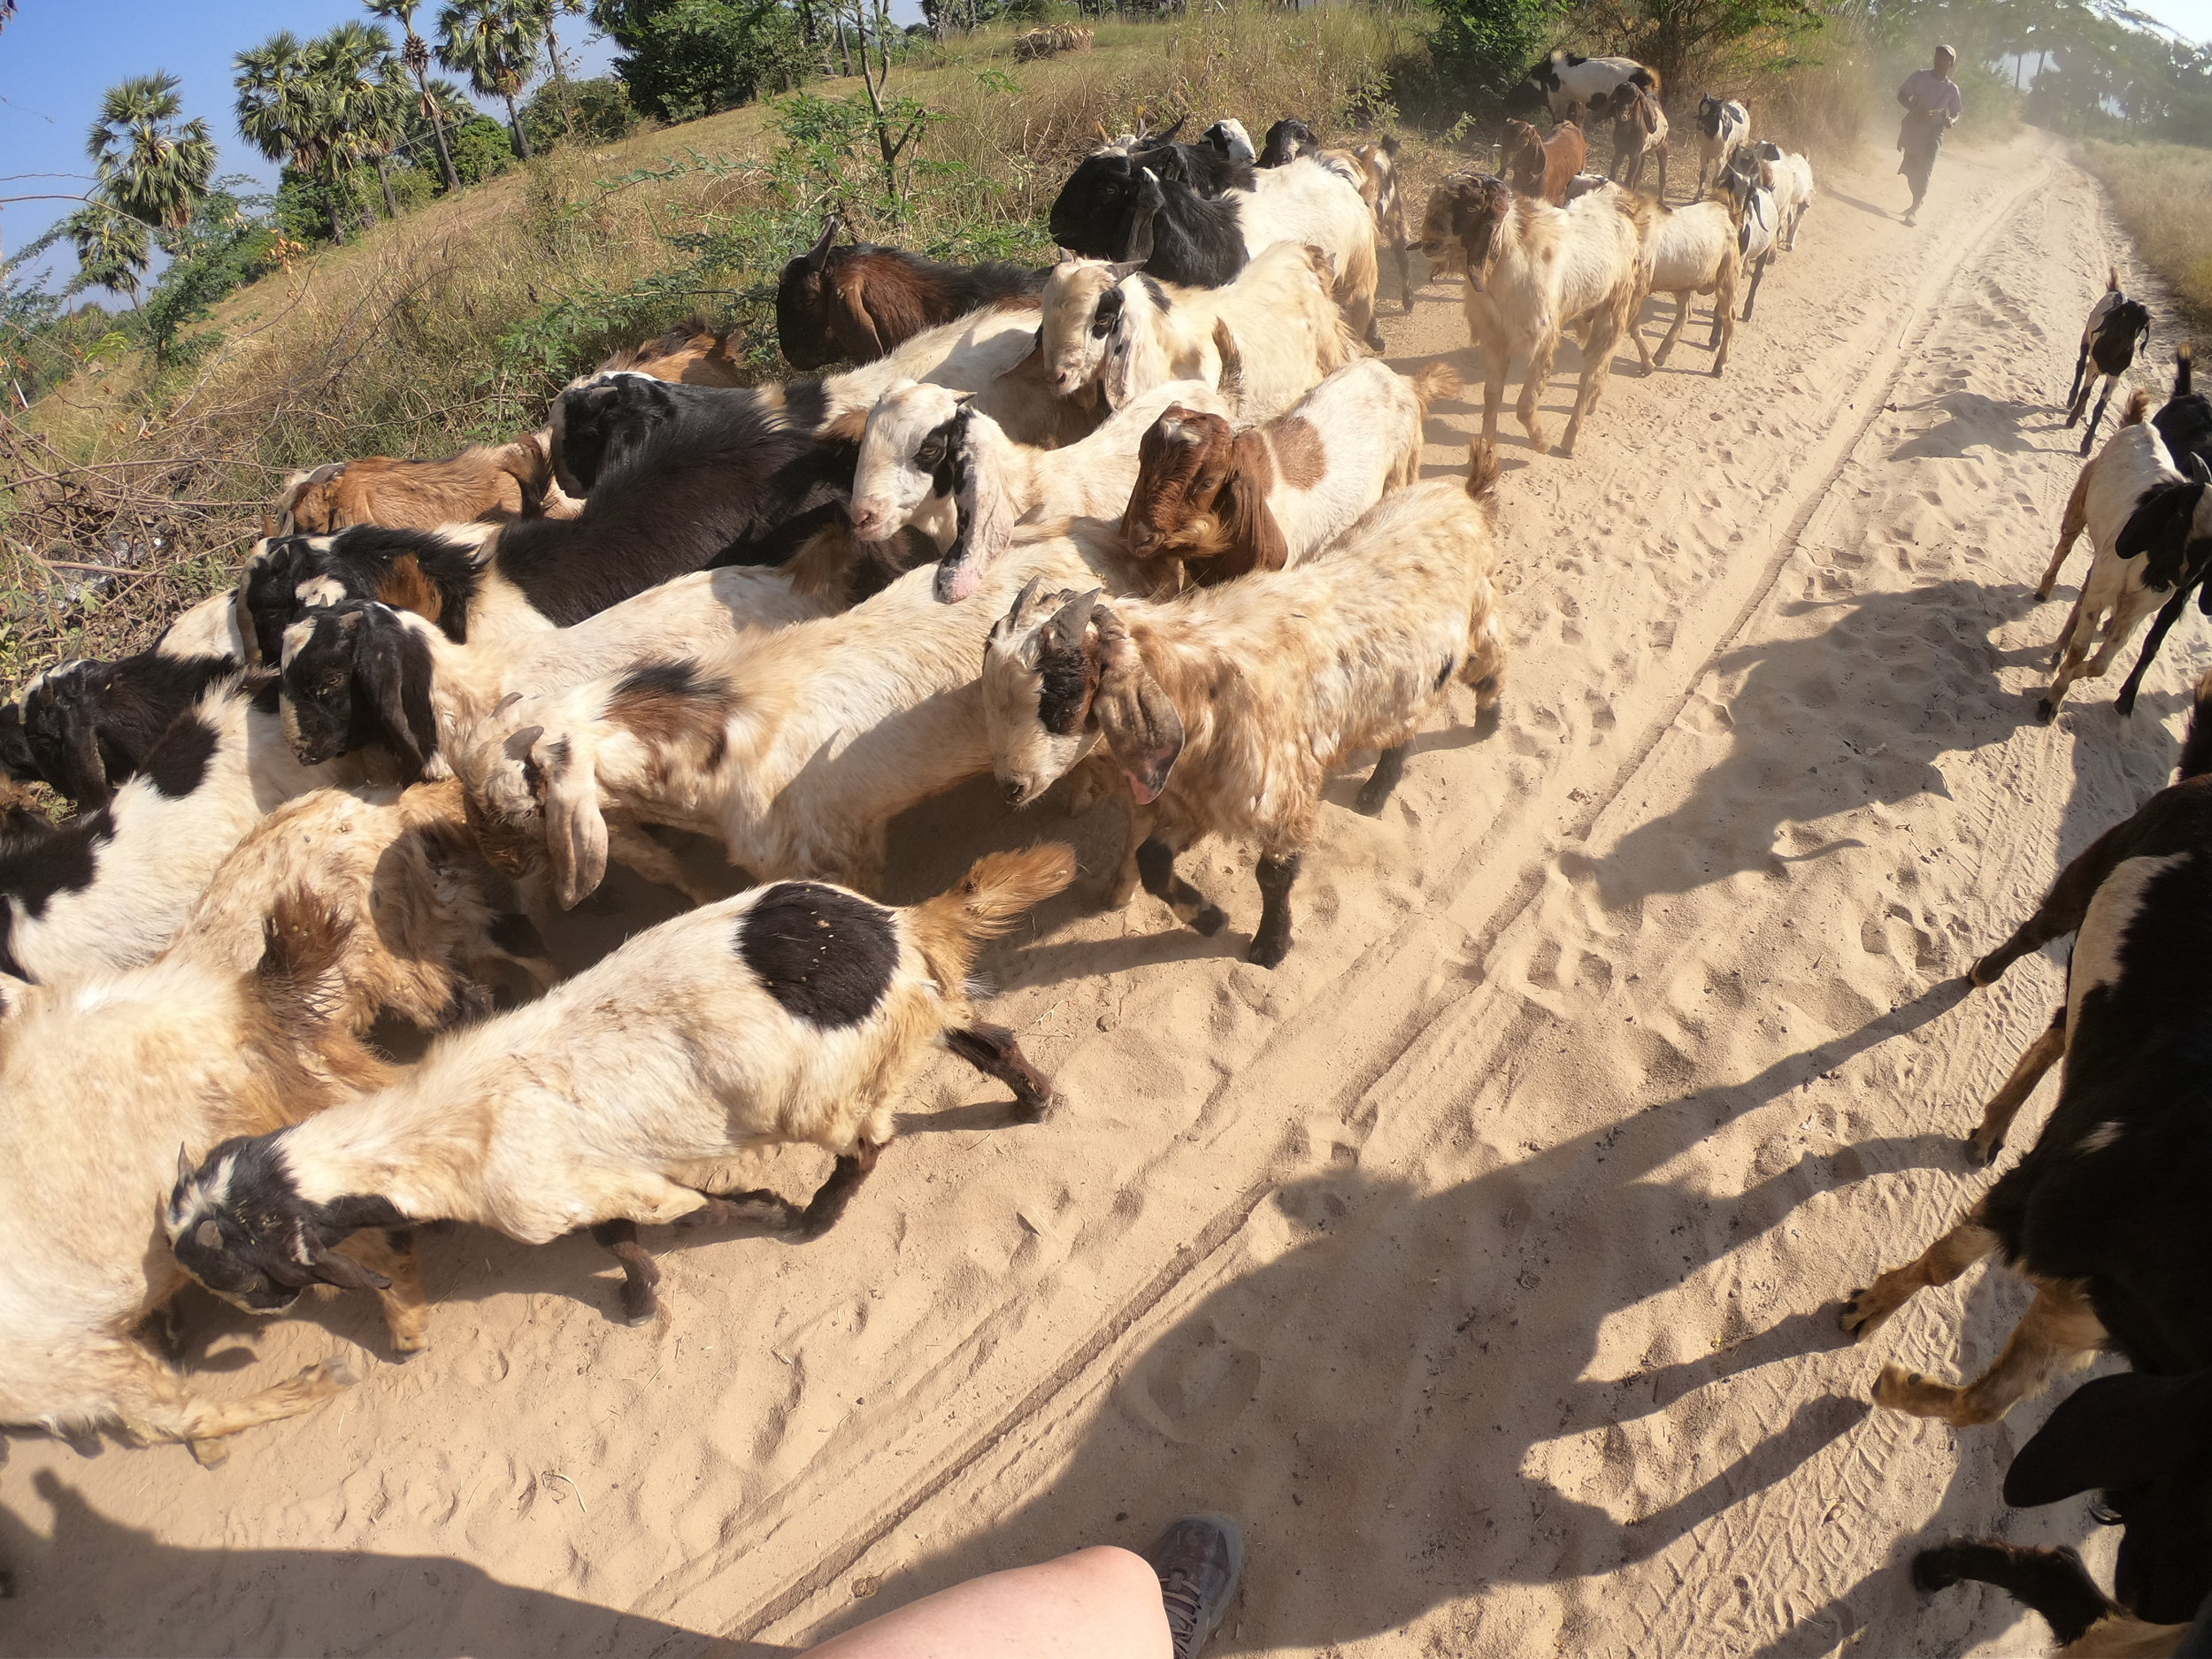 Course obstacles encountered - goats and a lot of sand!